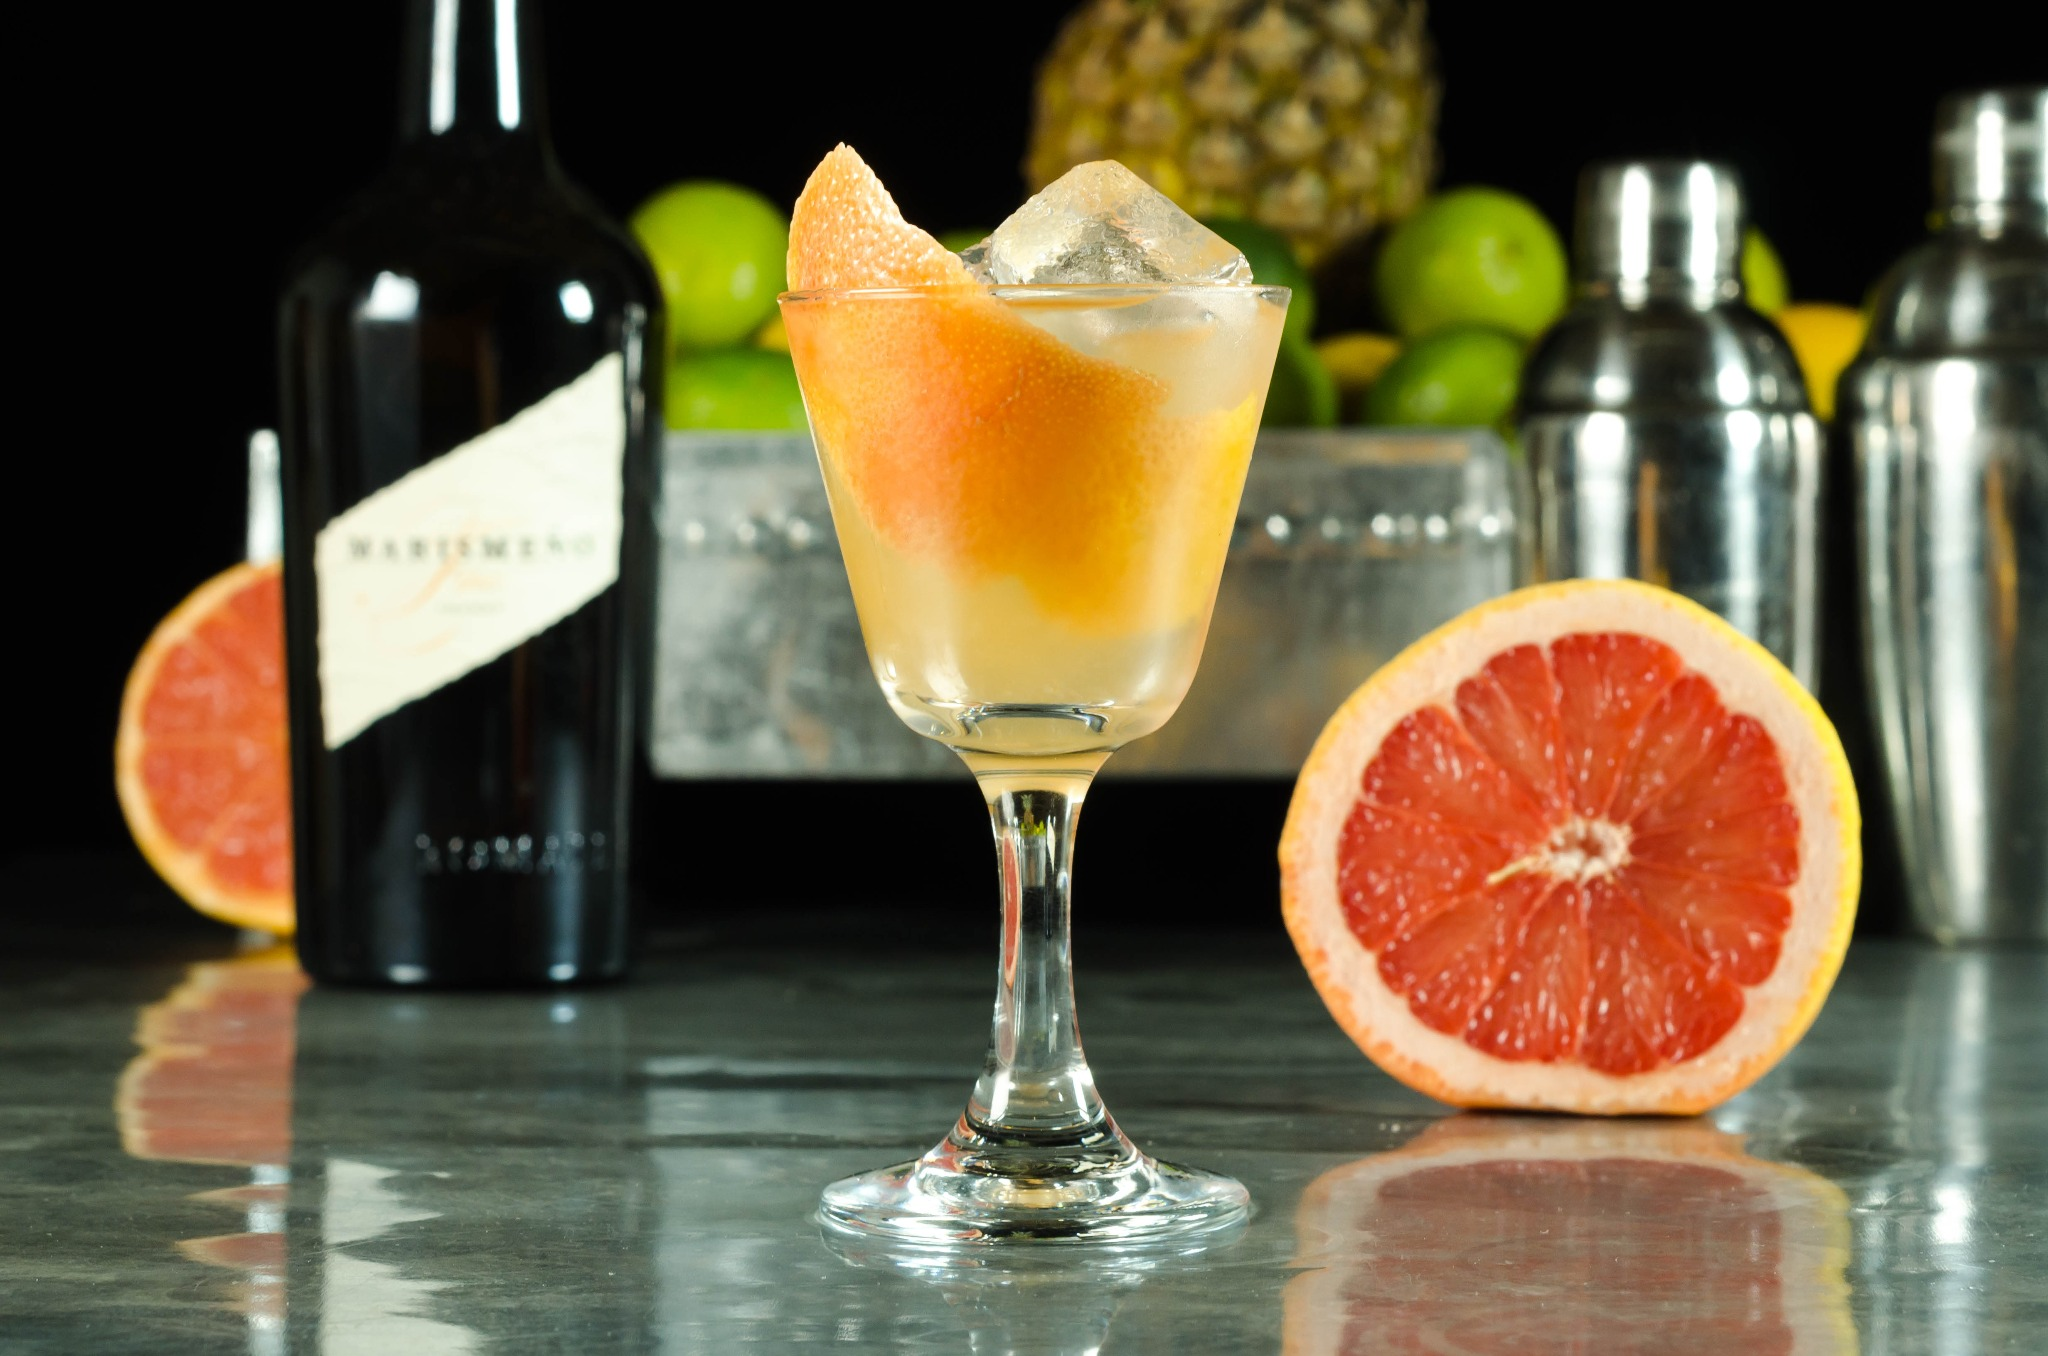 Grapefruit Vermouth